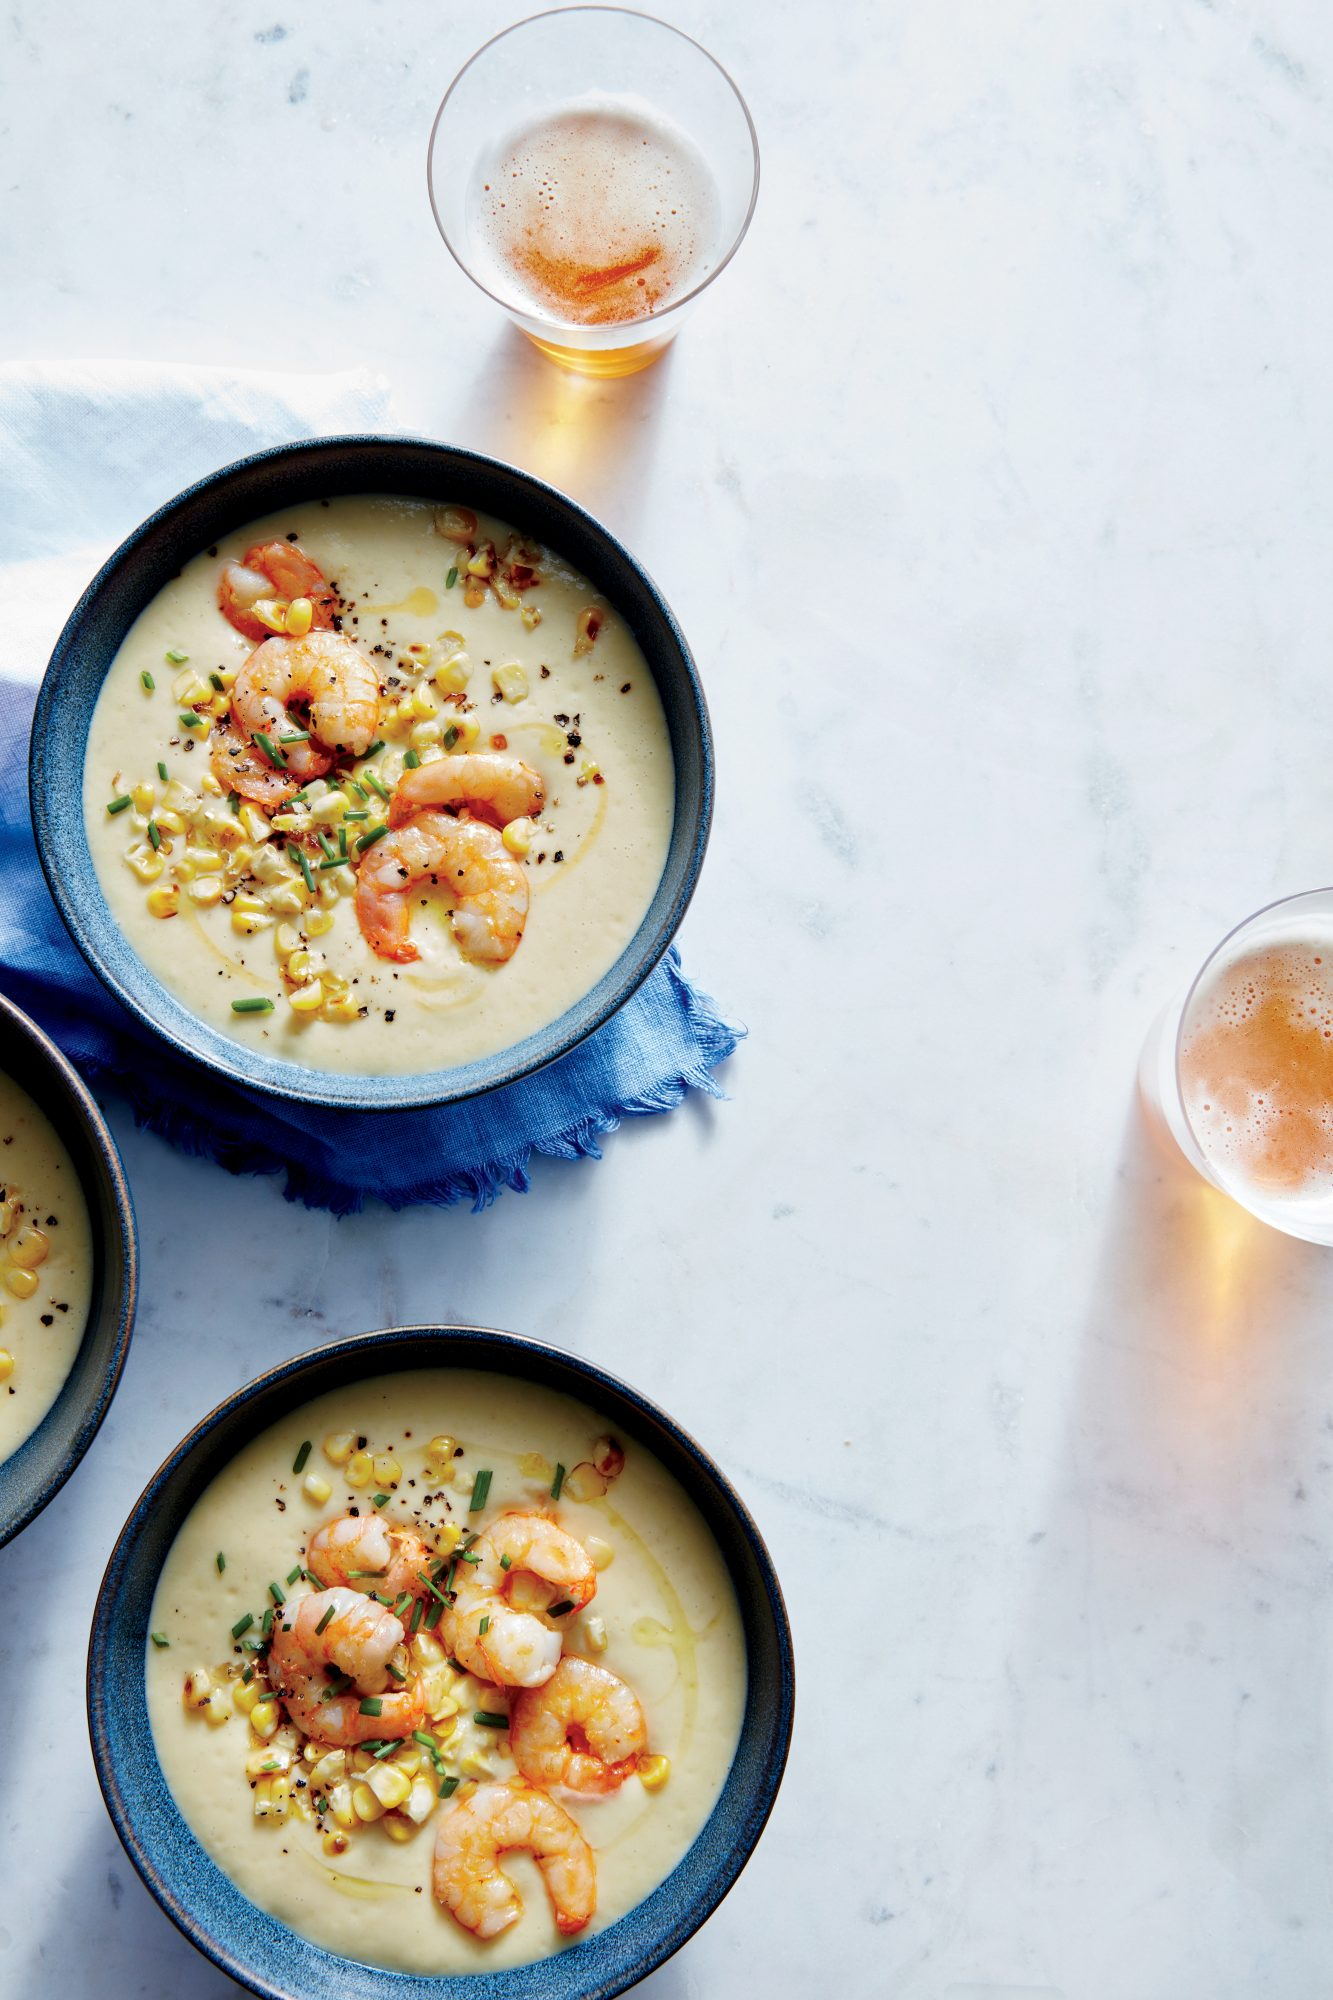 Perfect Corn and Potato Soup with Sauteed Shrimp